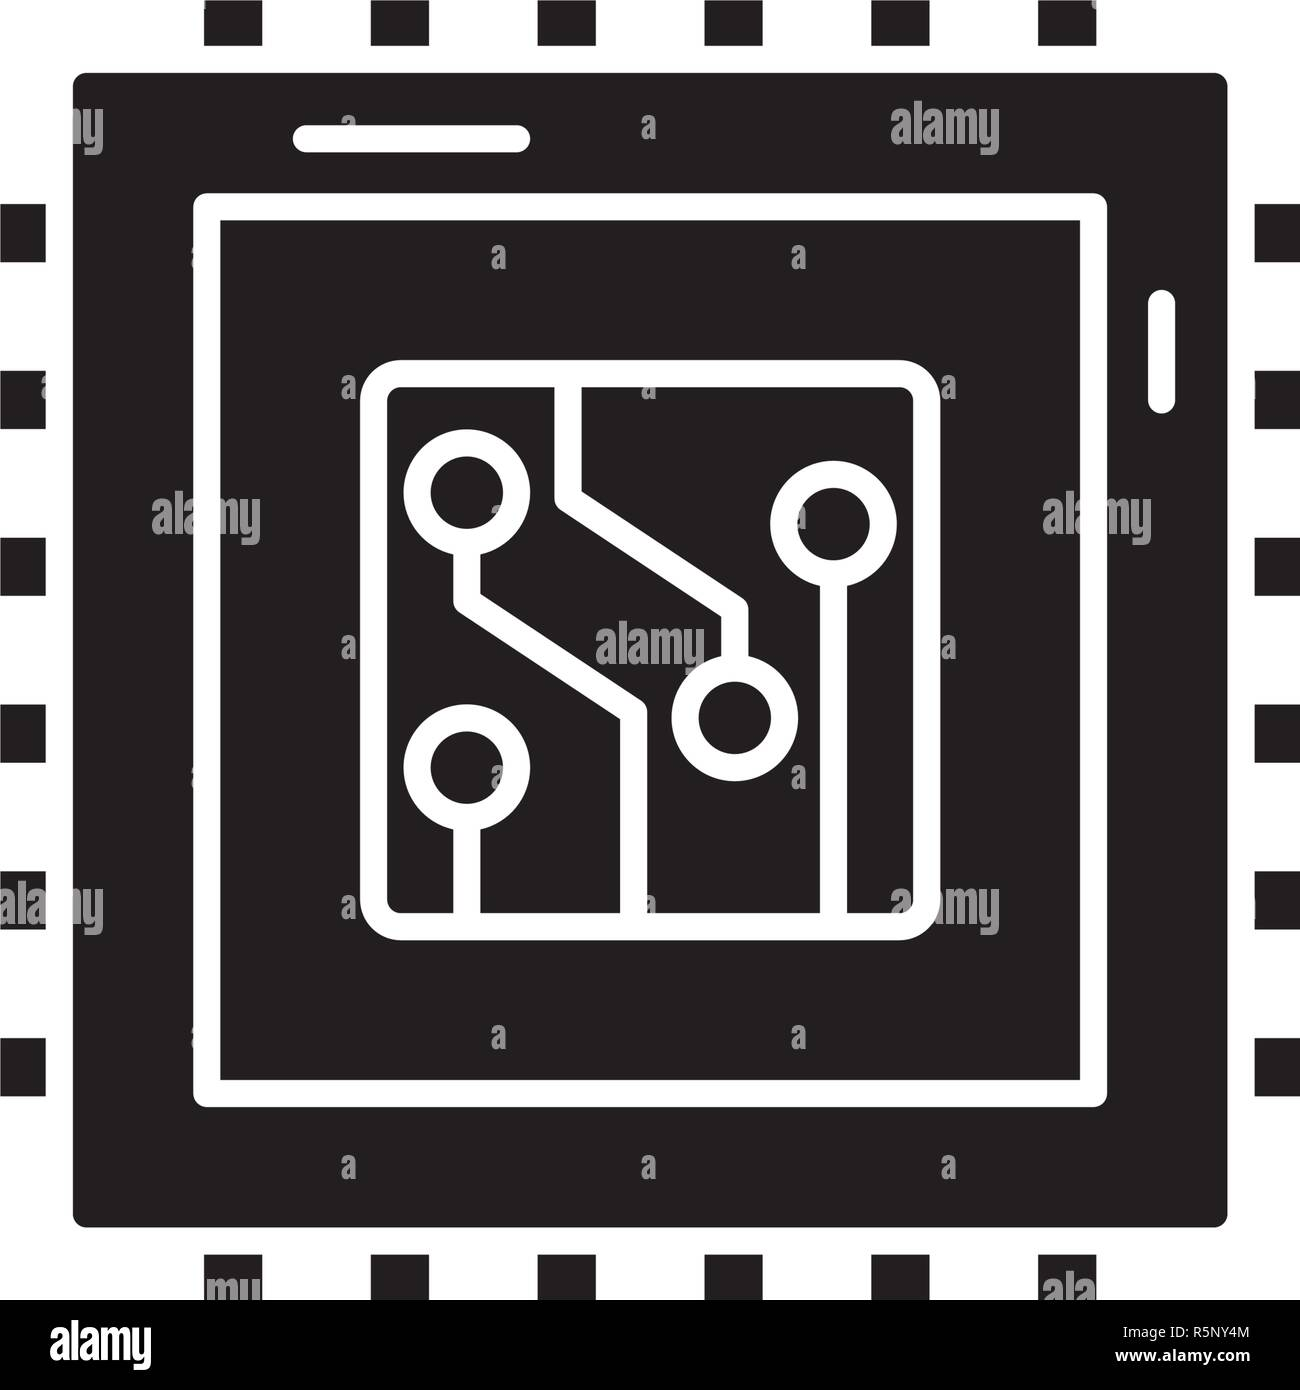 Digital production black icon, vector sign on isolated background. Digital production concept symbol, illustration  - Stock Image